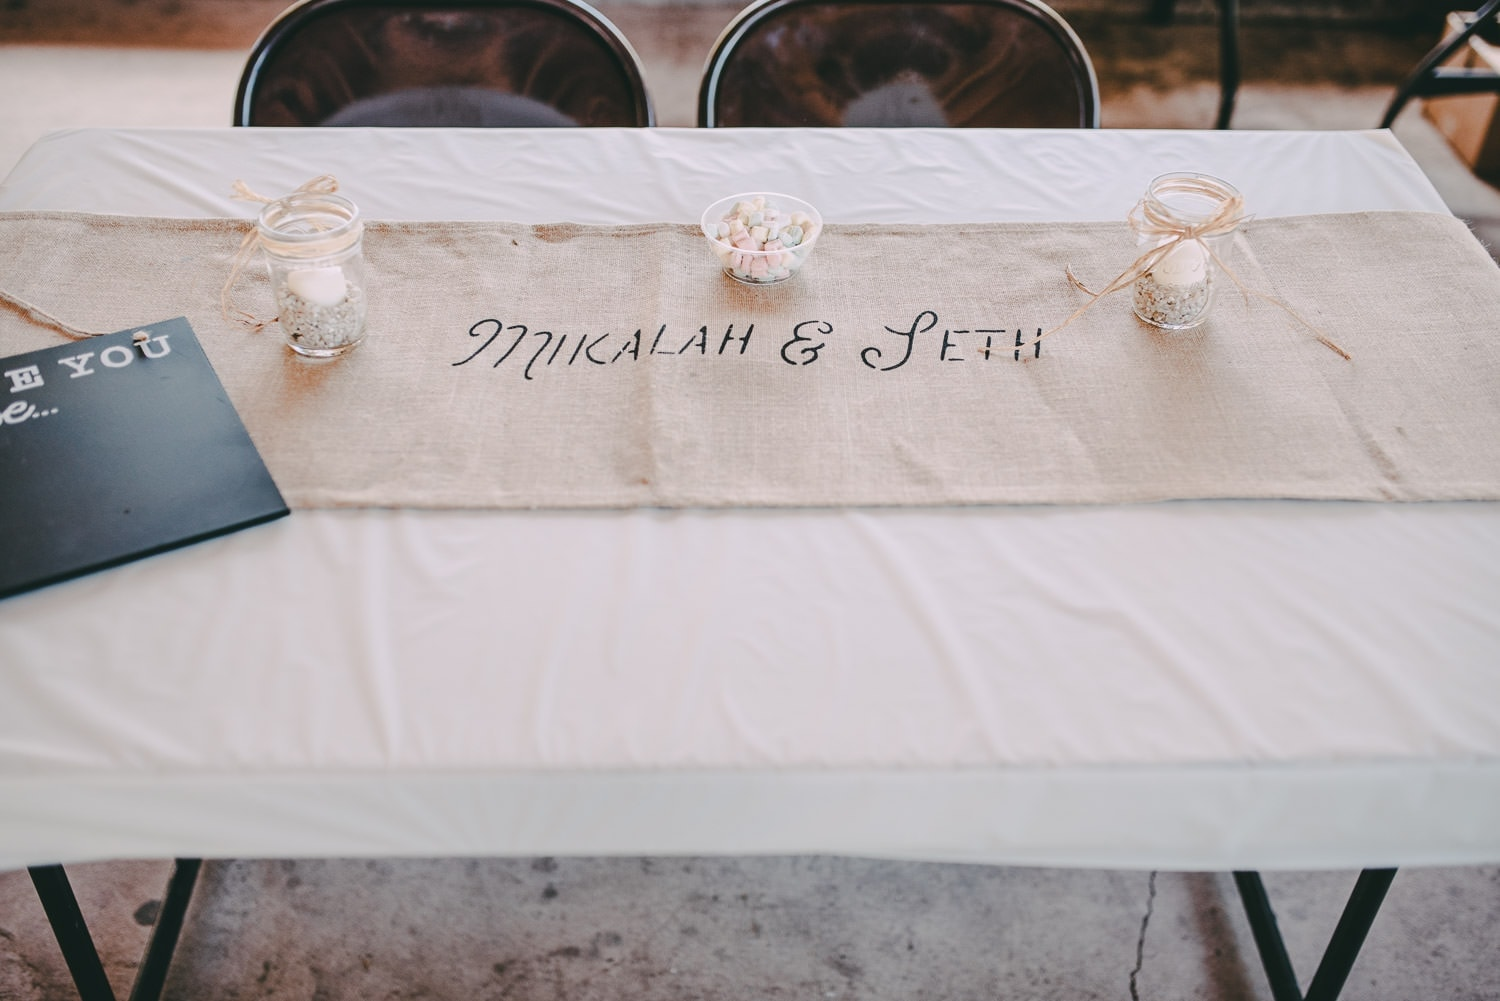 A table runner with the bride and grooms names printed on it